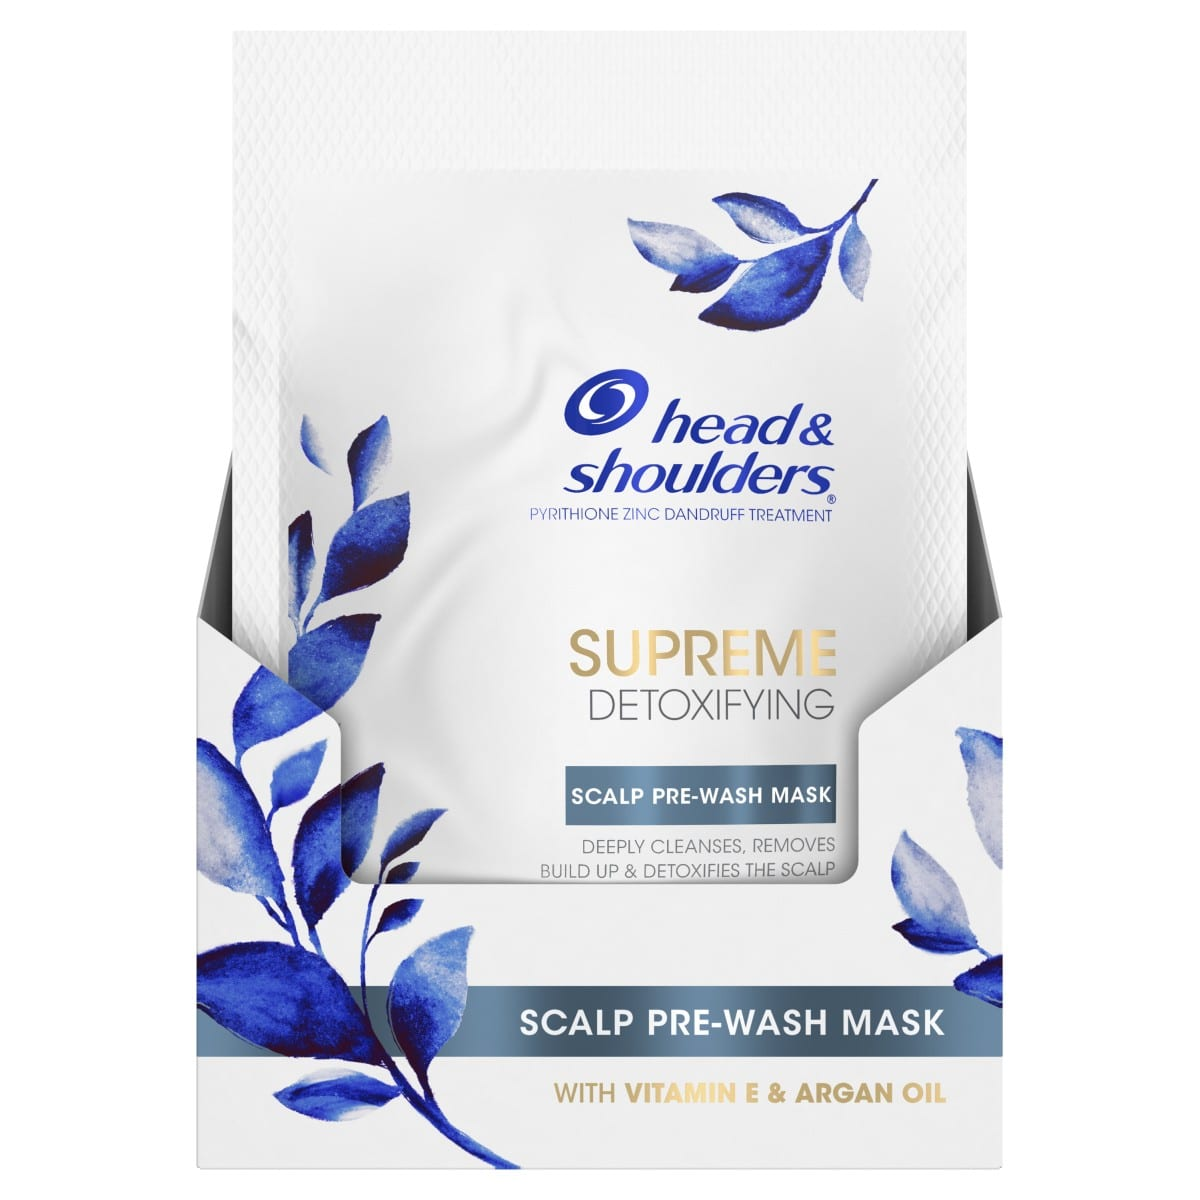 Head and Shoulders Detoxifying Scalp Pre-Wash Mask